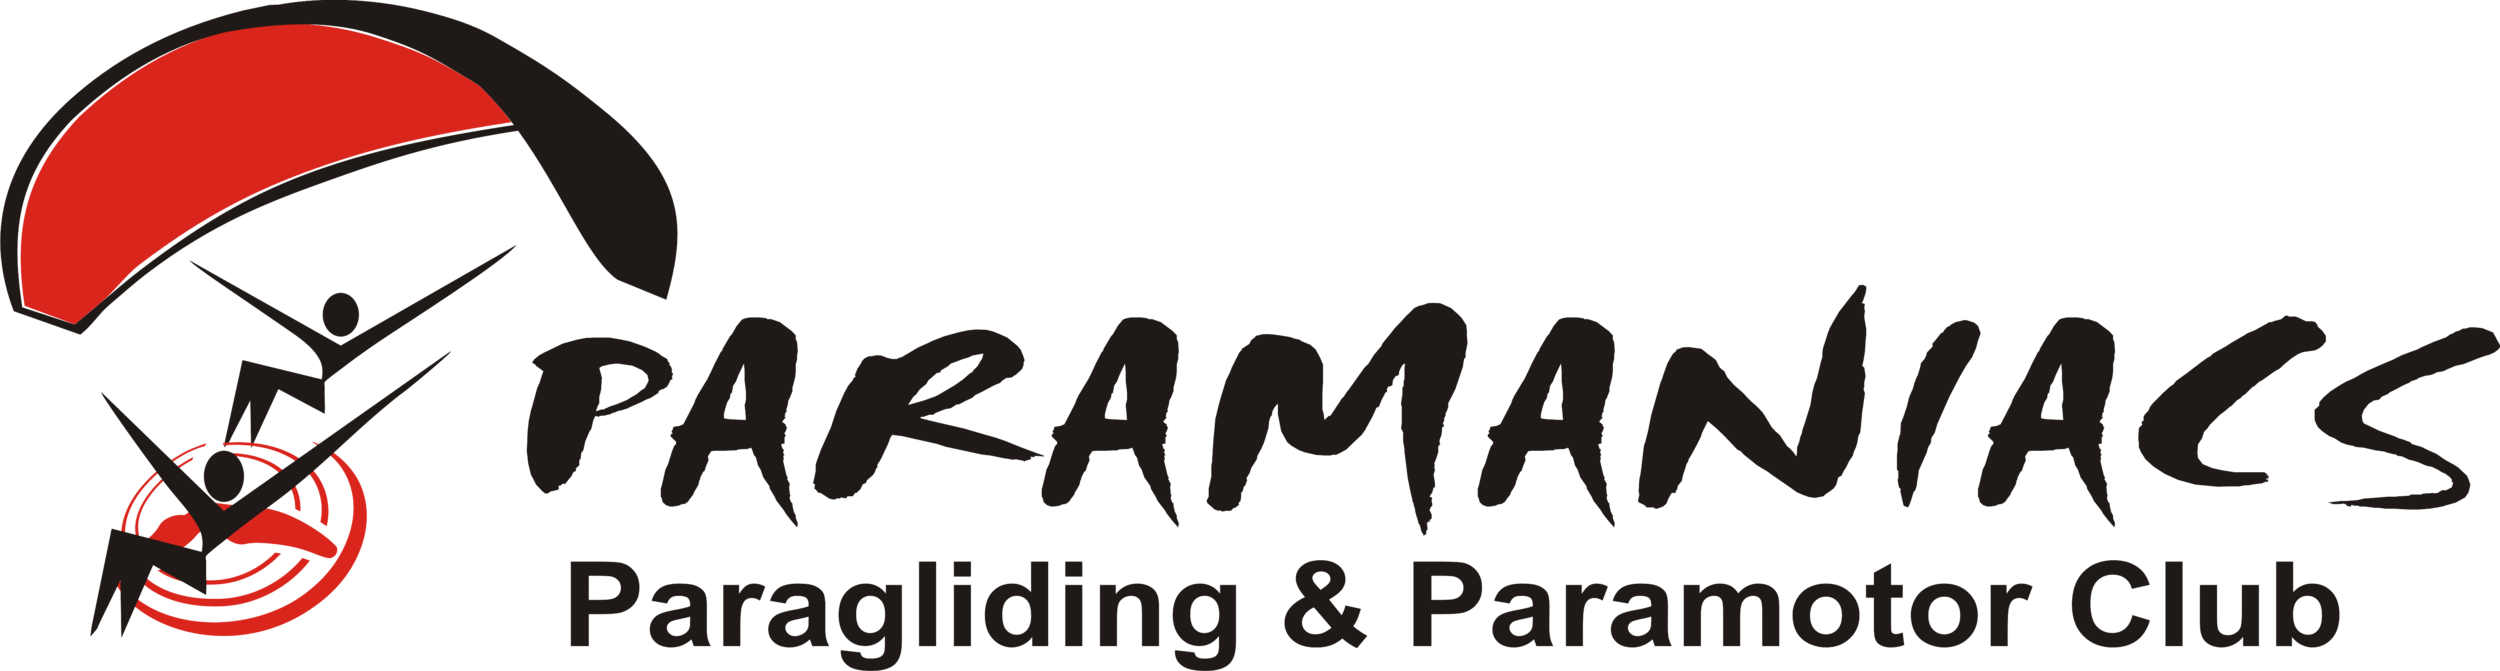 Paramaniacs Club logo.png